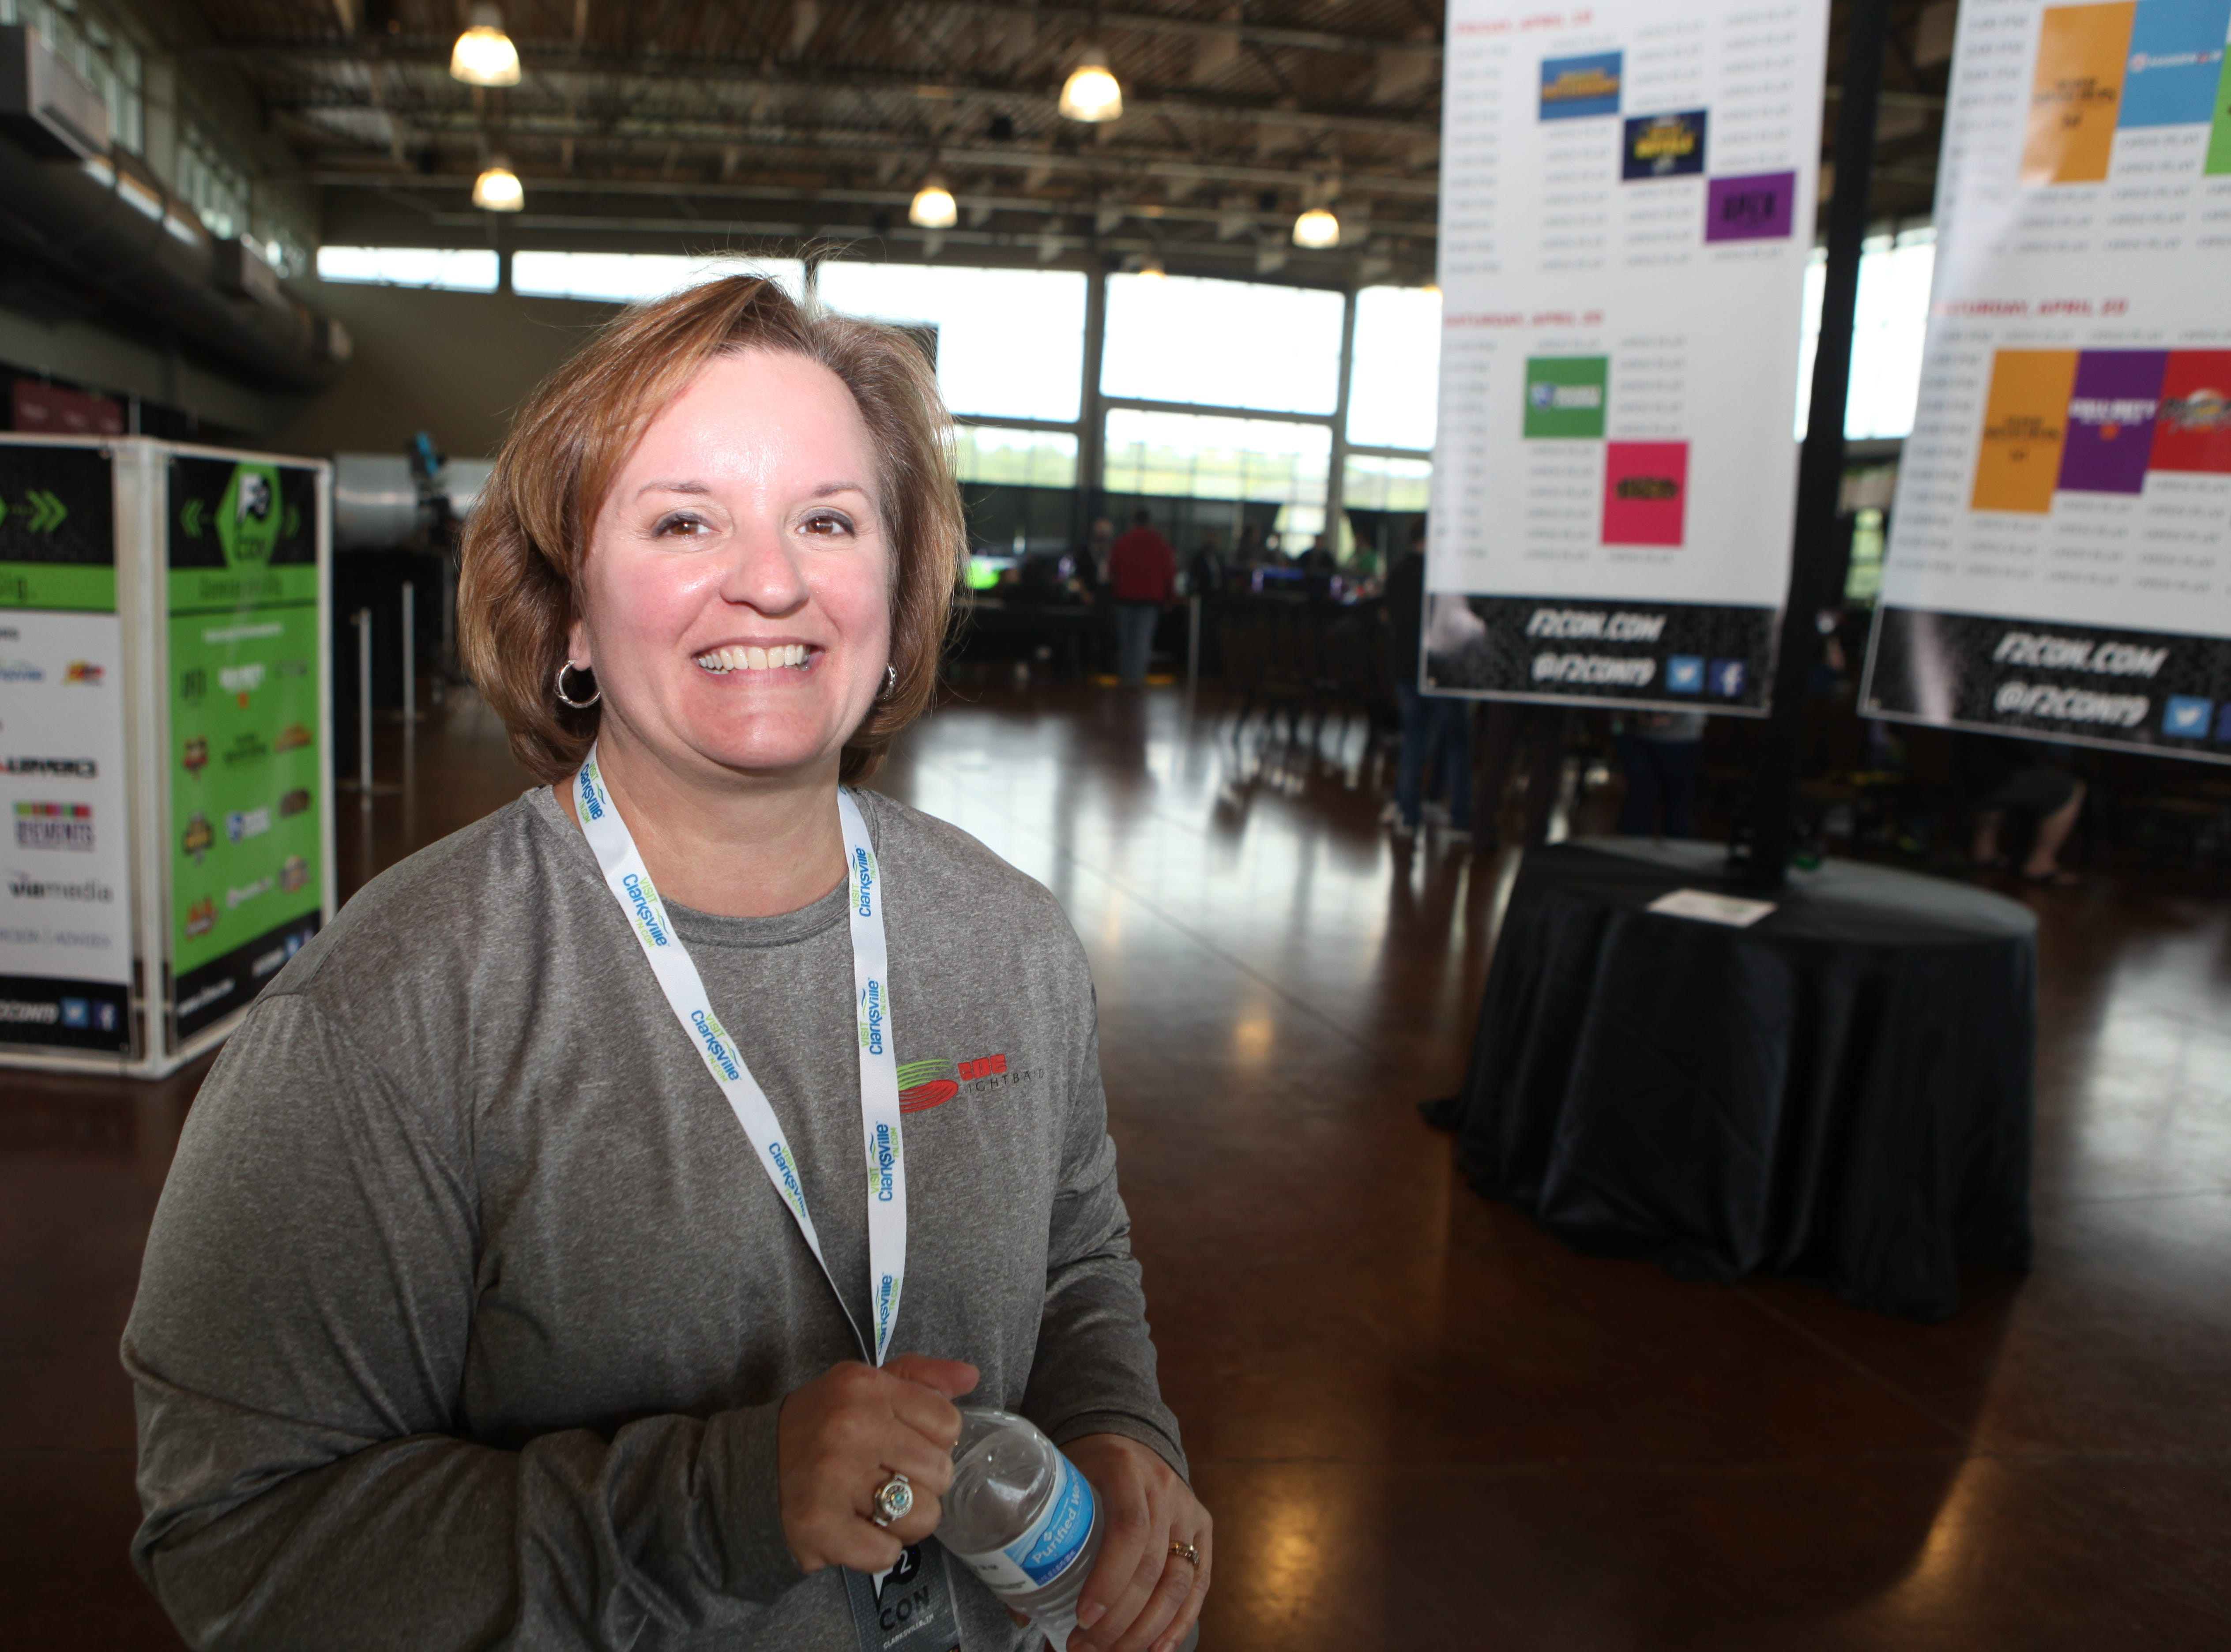 CDE Lightband's Christy Batts at the second annual F2 Con Gaming Tournament on Saturday, April 20, 2019.